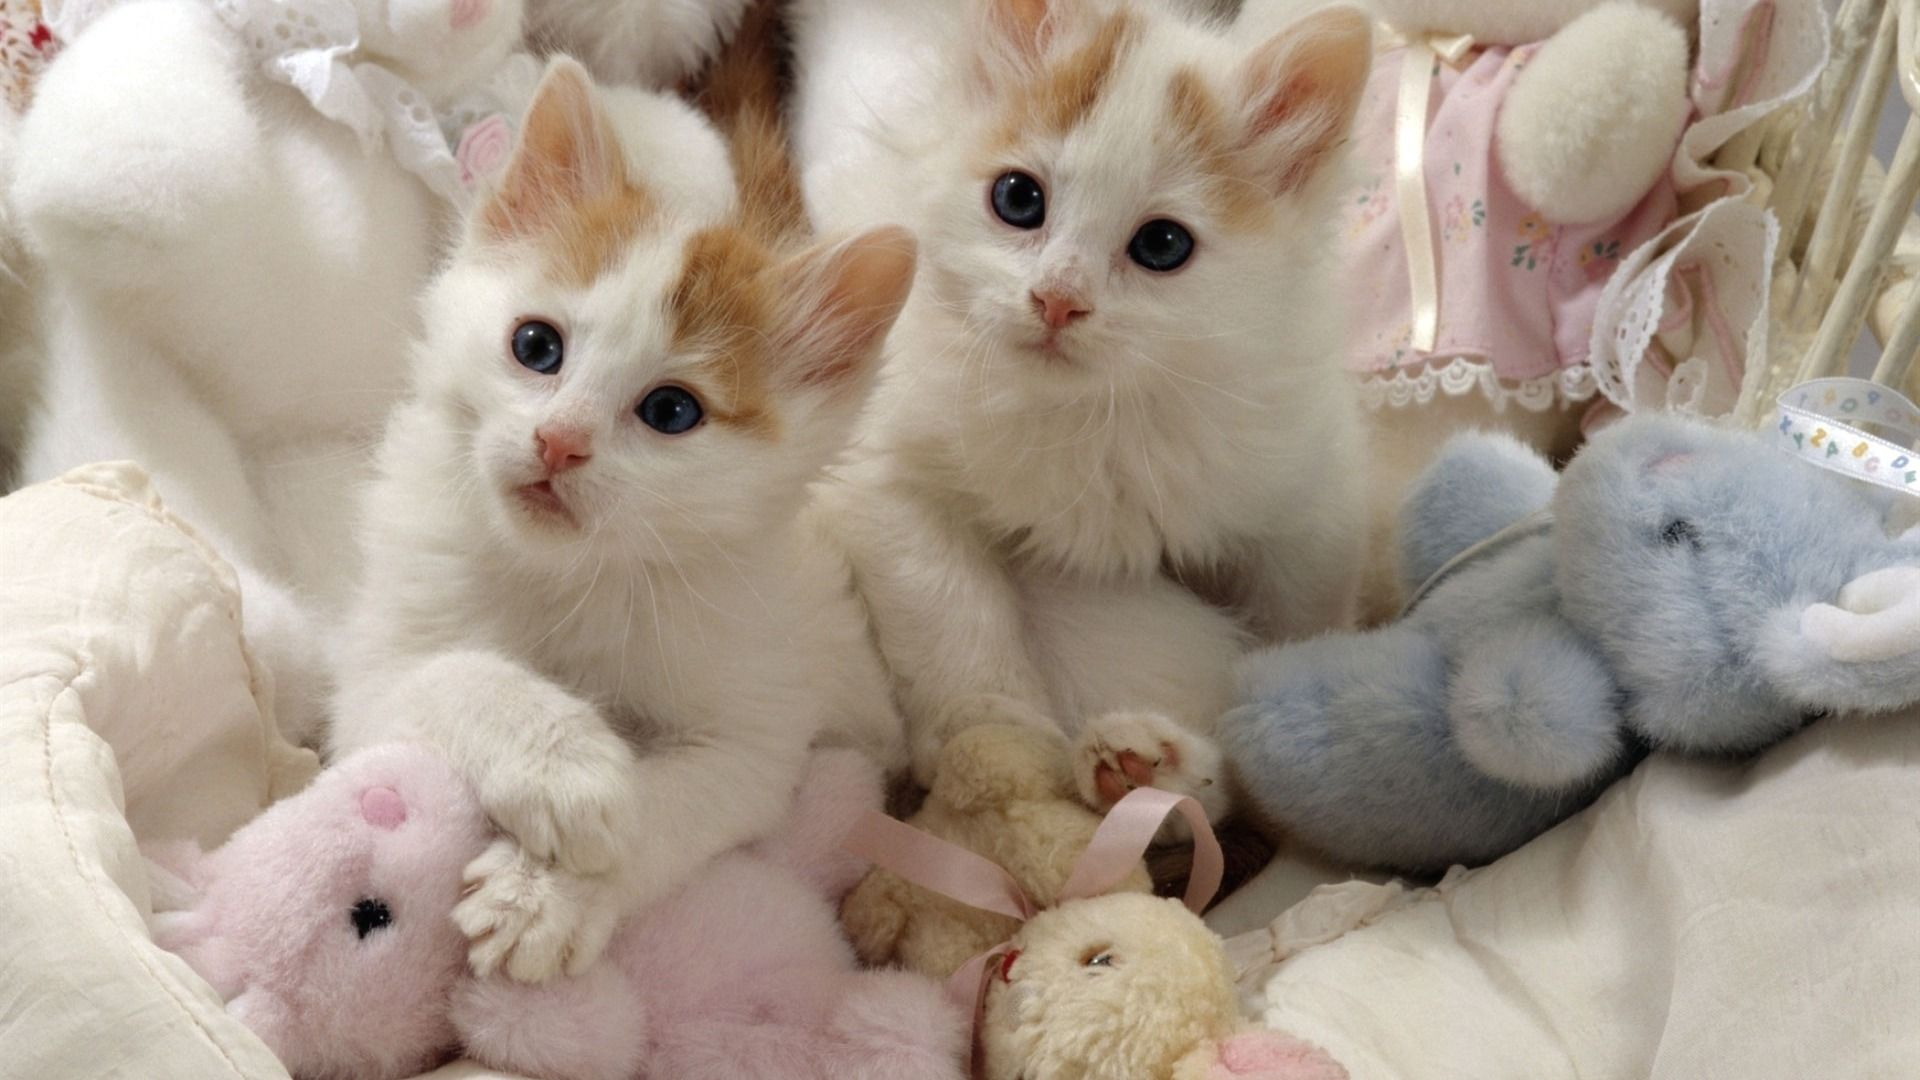 Download Wallpaper Pair Toys Kittens White Section Cats In Resolution 1920x1080